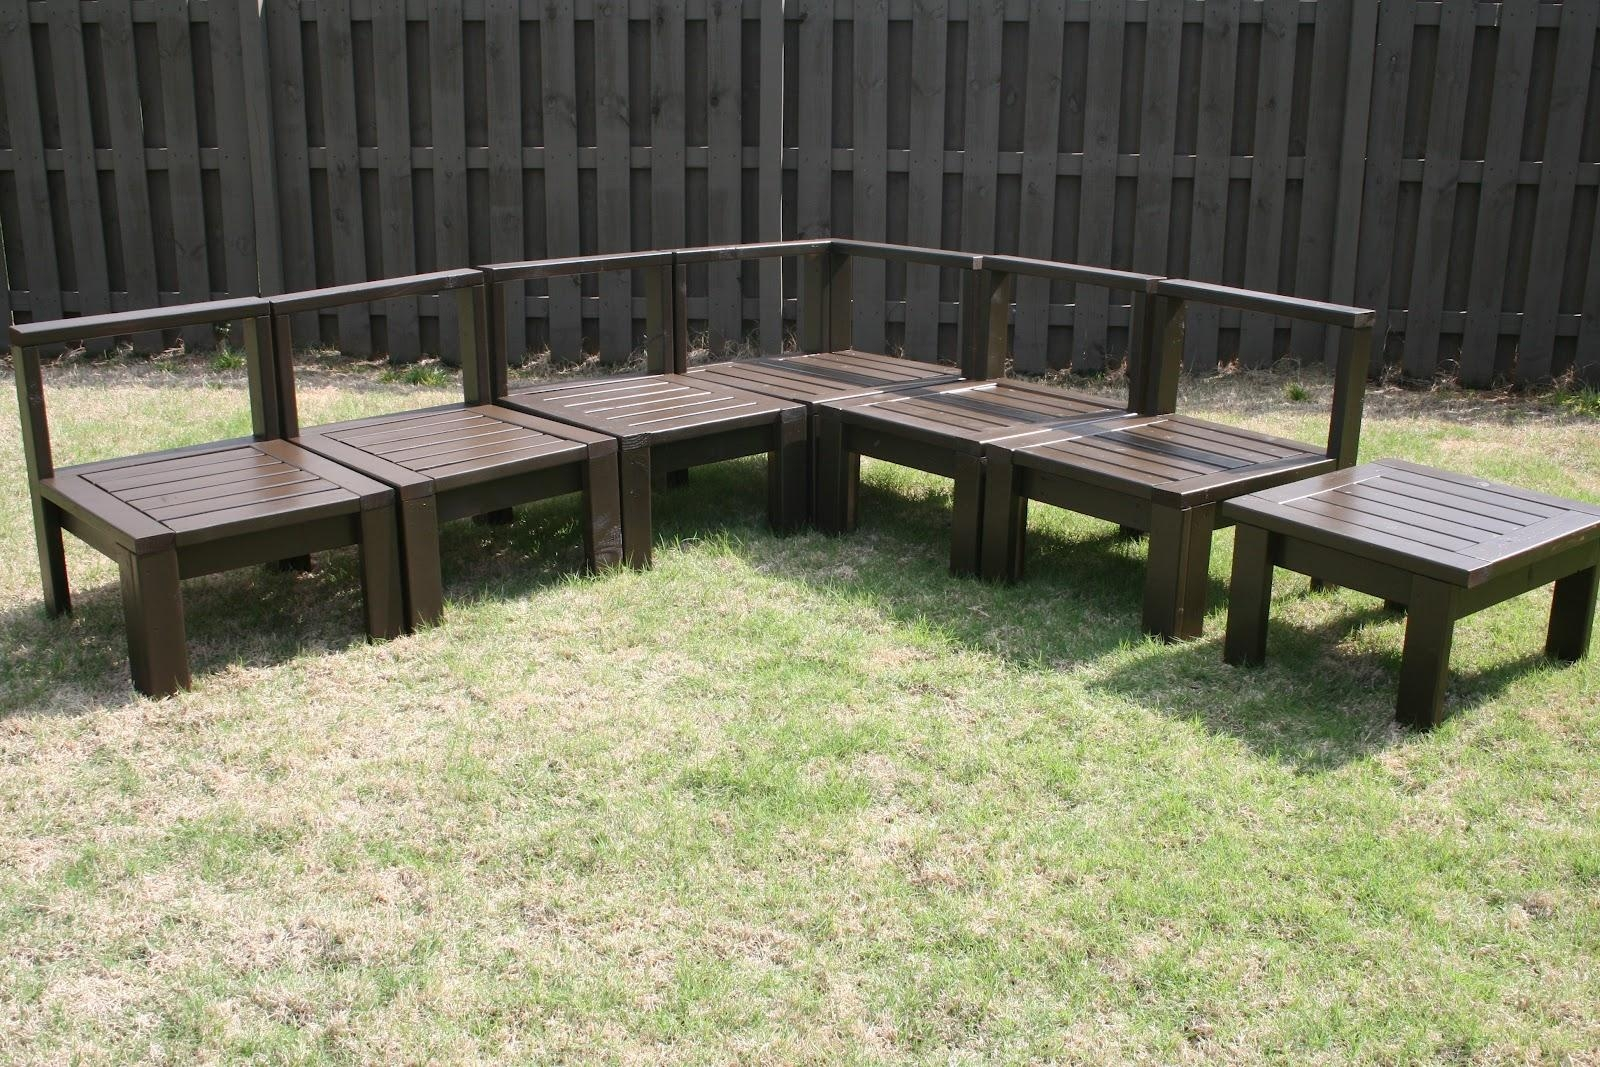 Furniture Simple Cheap Patio Furniture Patio Cover On Diy Patio Pertaining To Cheap Patio Sofas (Image 5 of 22)